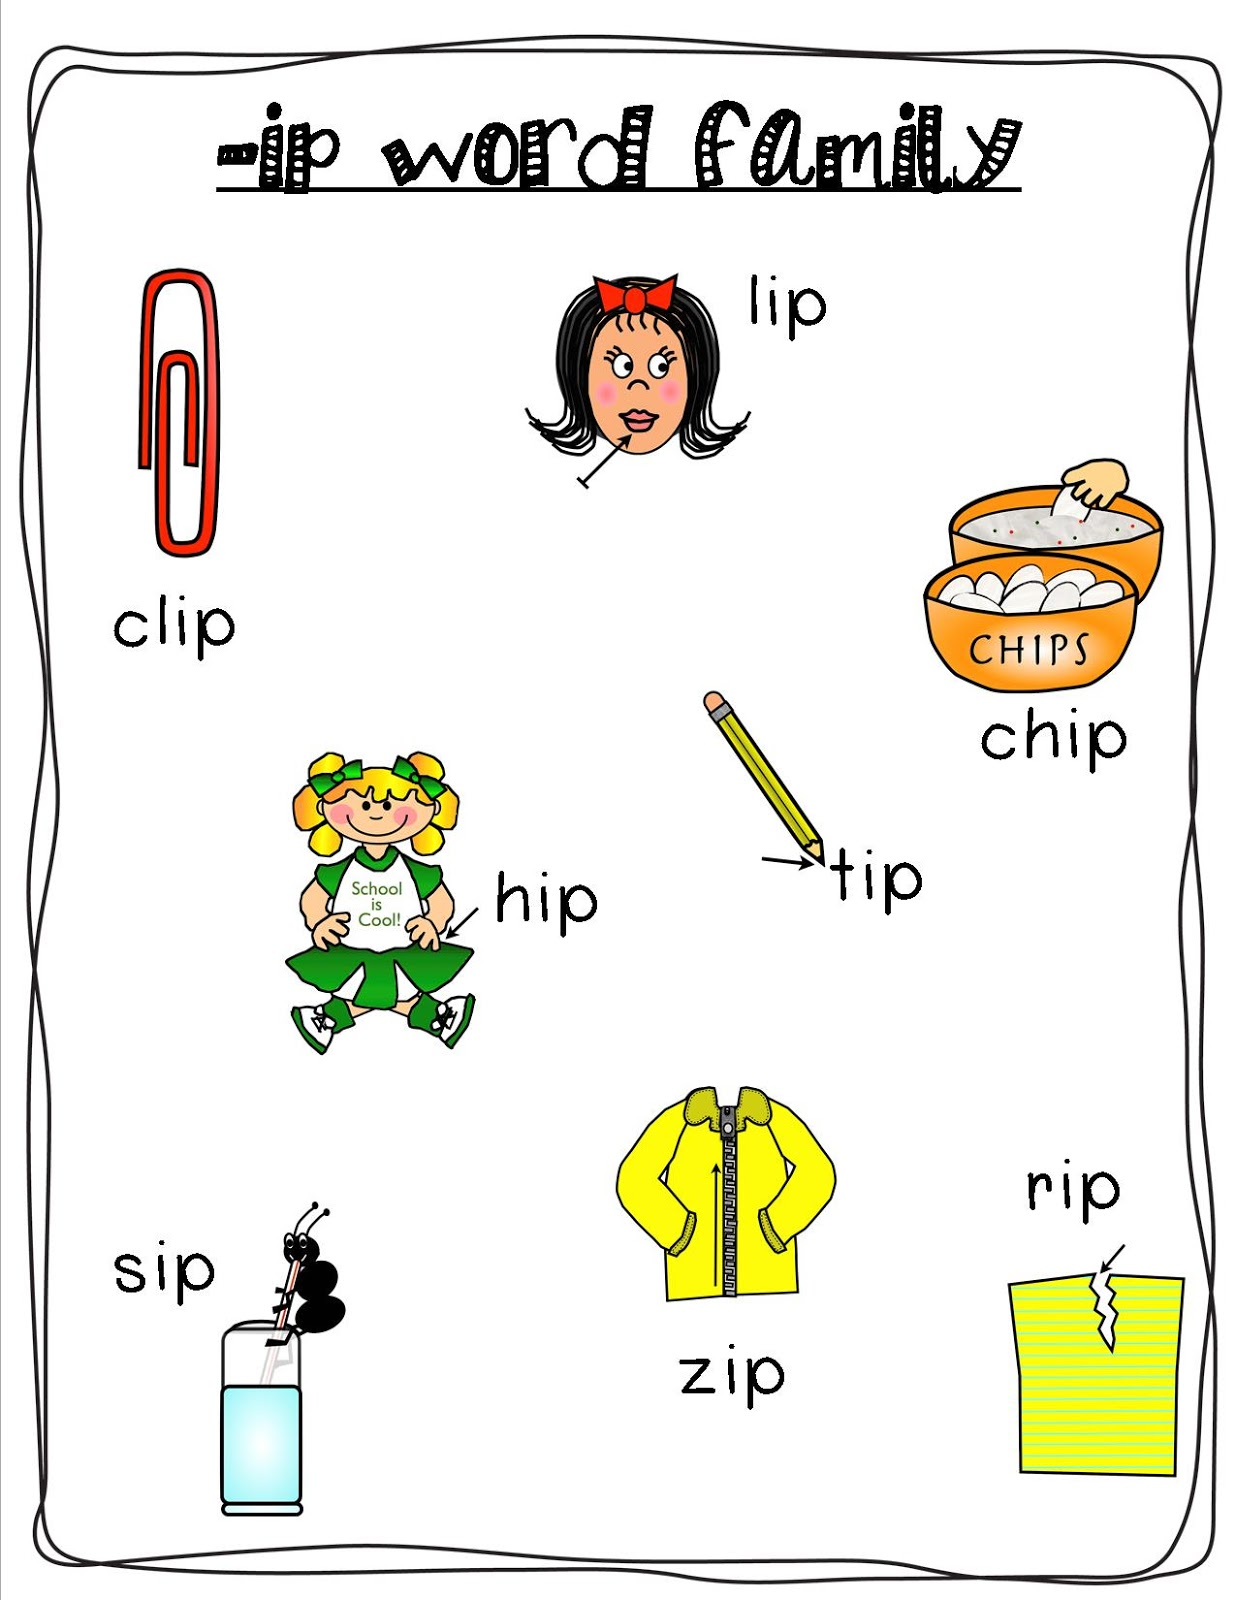 Mrs. Bohaty's Kindergarten Kingdom: -ip word family